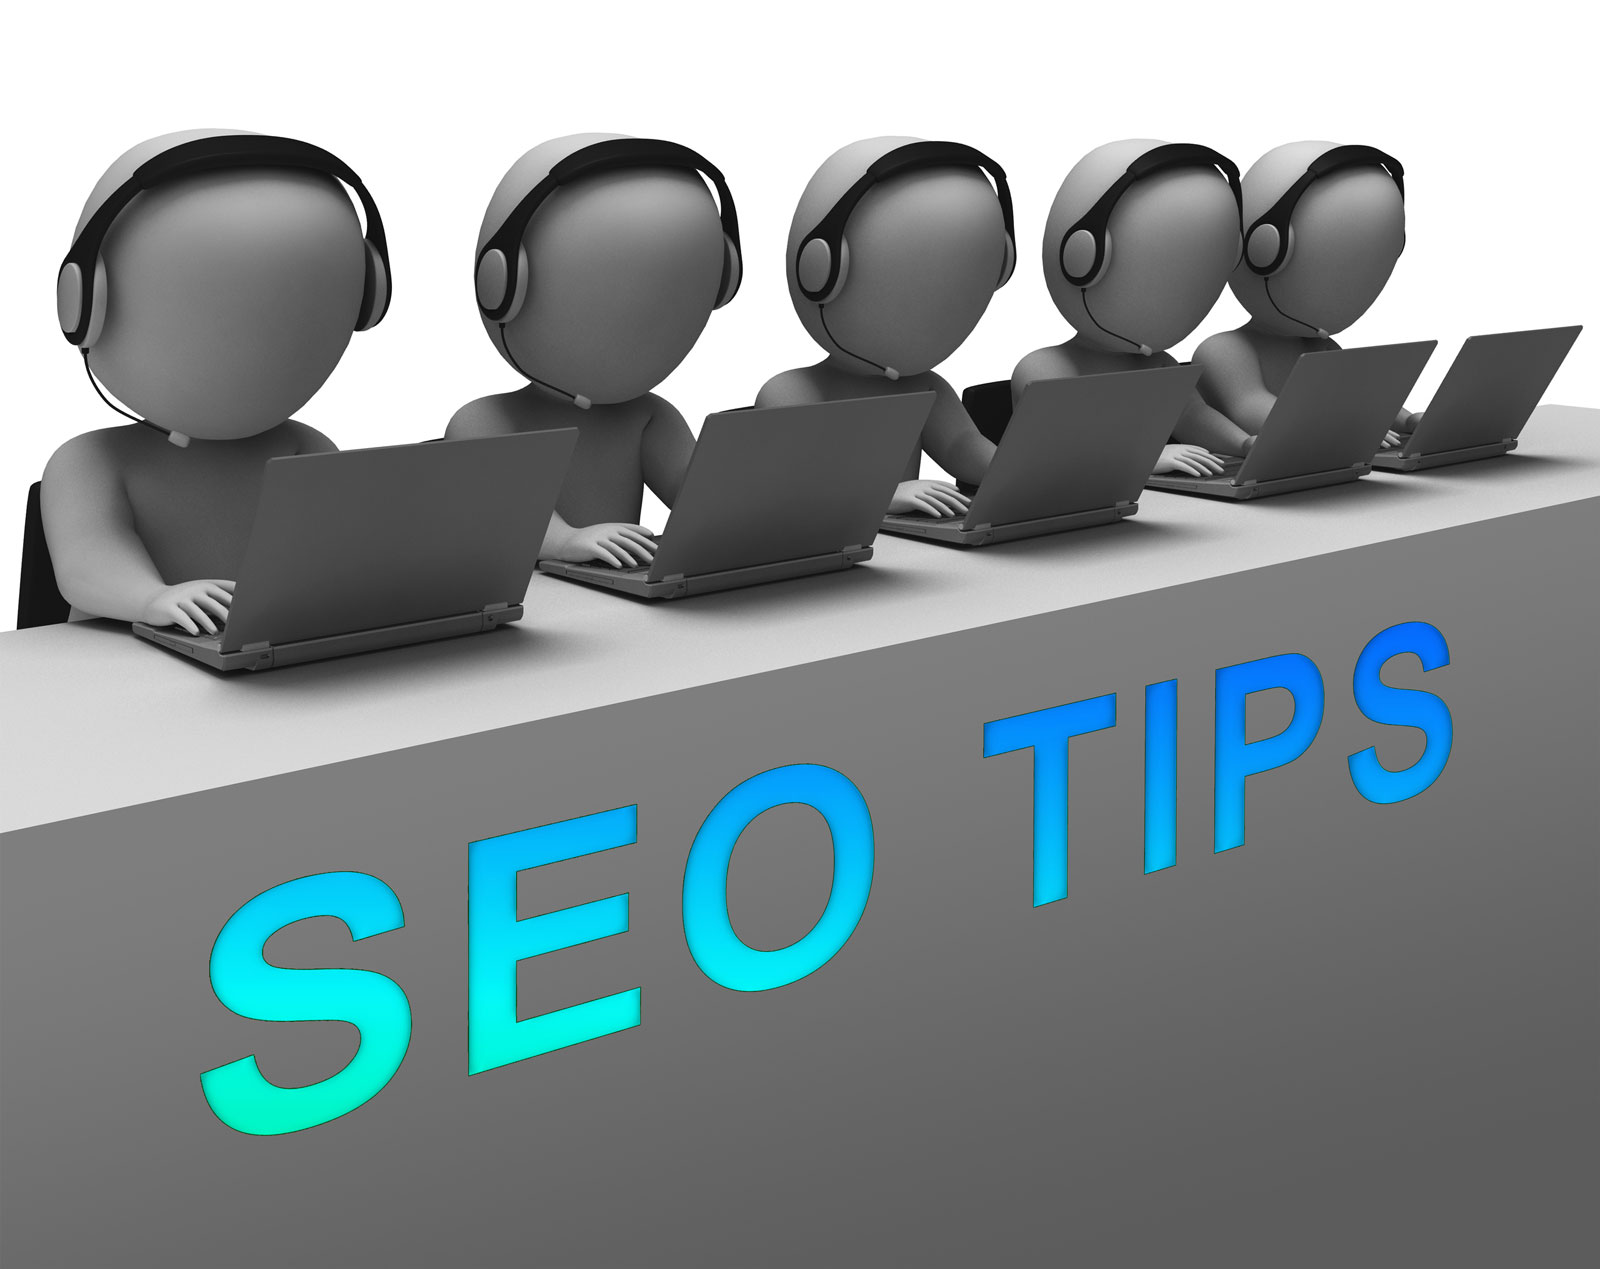 SEO Tips | 21 Simple Content Marketing Tips To Jumpstart Your Campaign